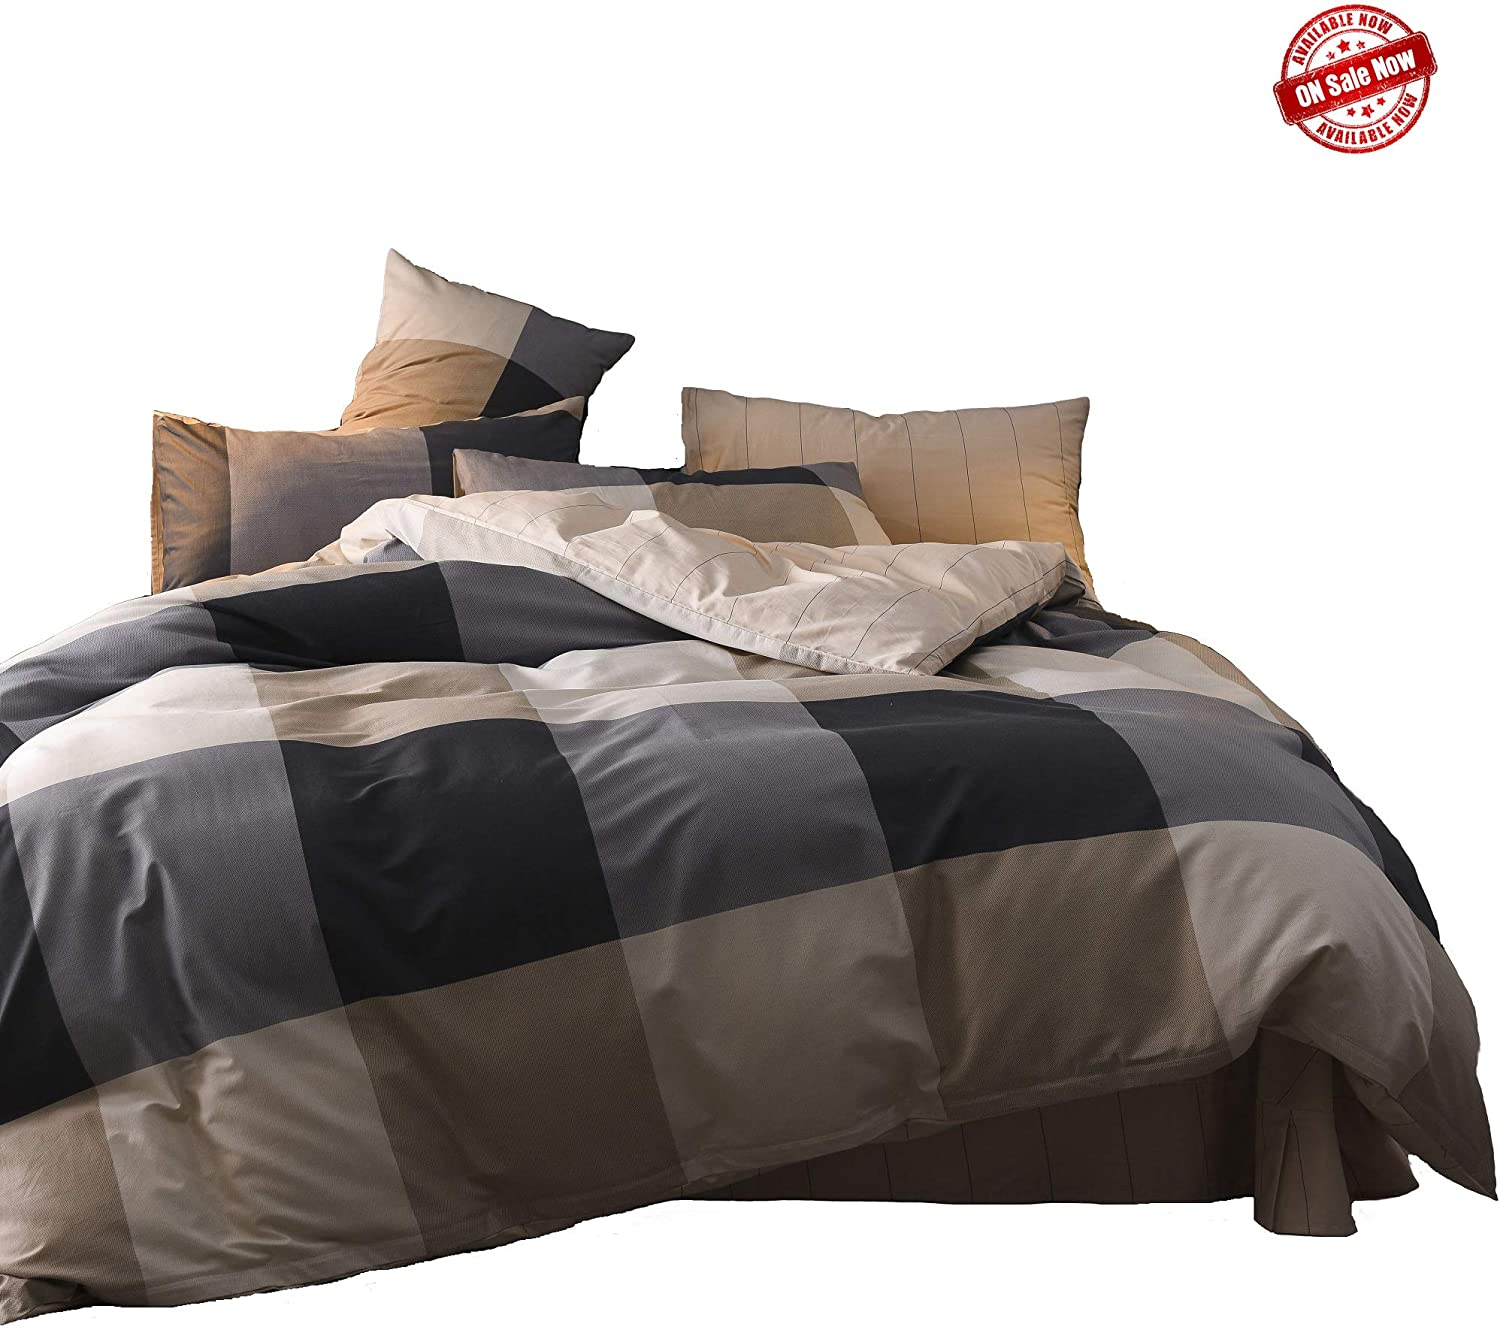 Jane yre Plaid Grid Duvet Cover,250 Thread Count Cotton Queen Grid Bedding Set,Grey Gingham Reversible Beige Striped Pattern Printed,with Zipper Closure,Ties,Luxury Soft Breathable,(3pcs,Queen)